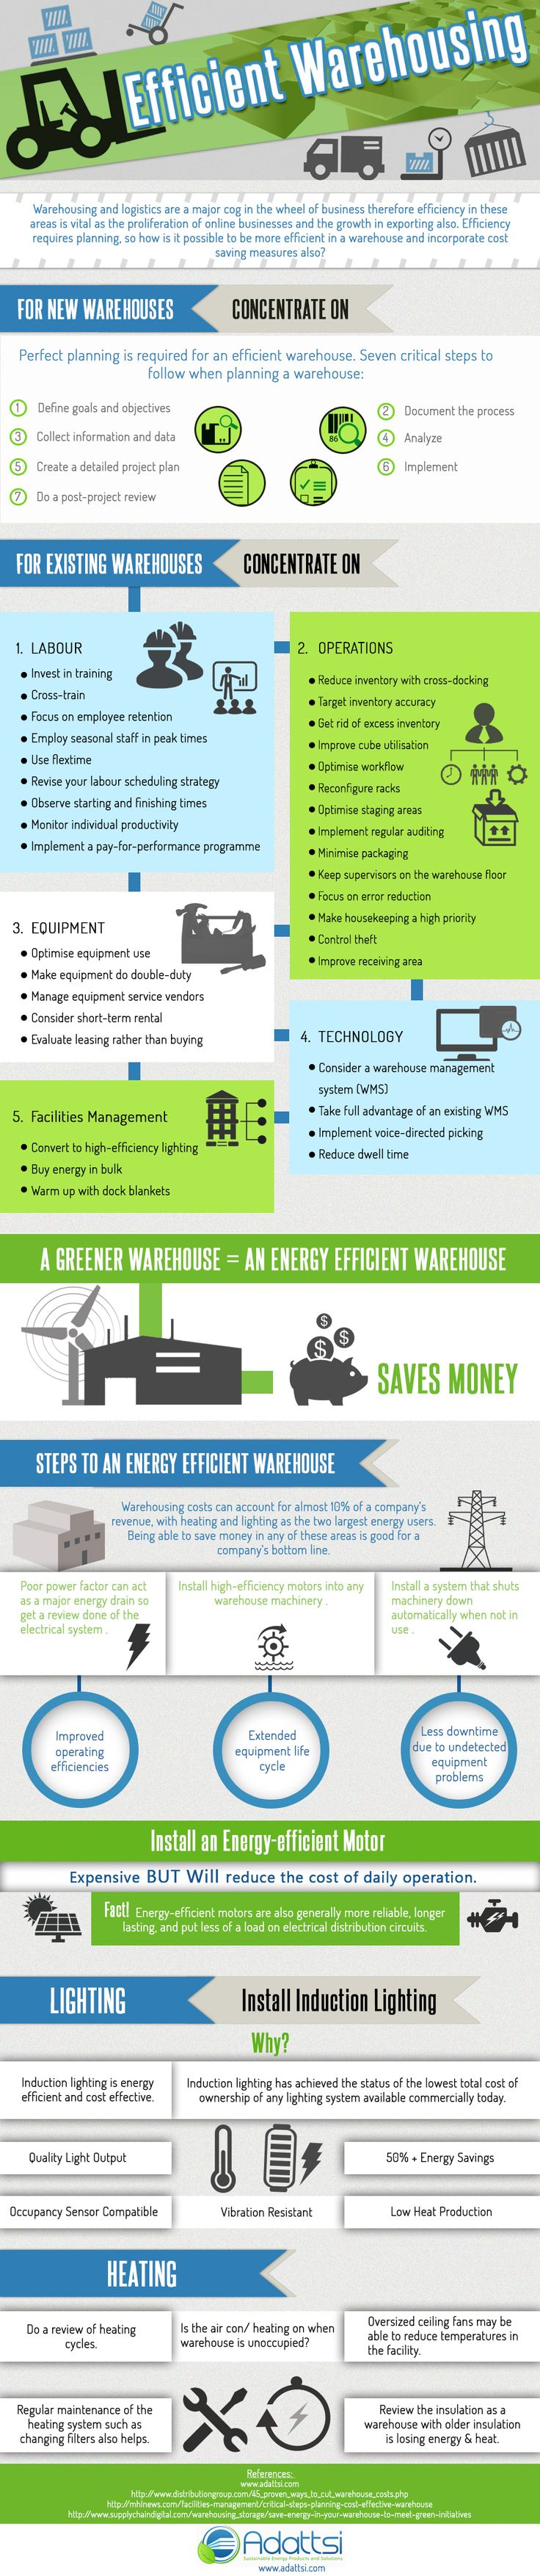 The infographic details green and efficient warehousing. Learn steps to an energy efficient warehouse and how to save money doing it.